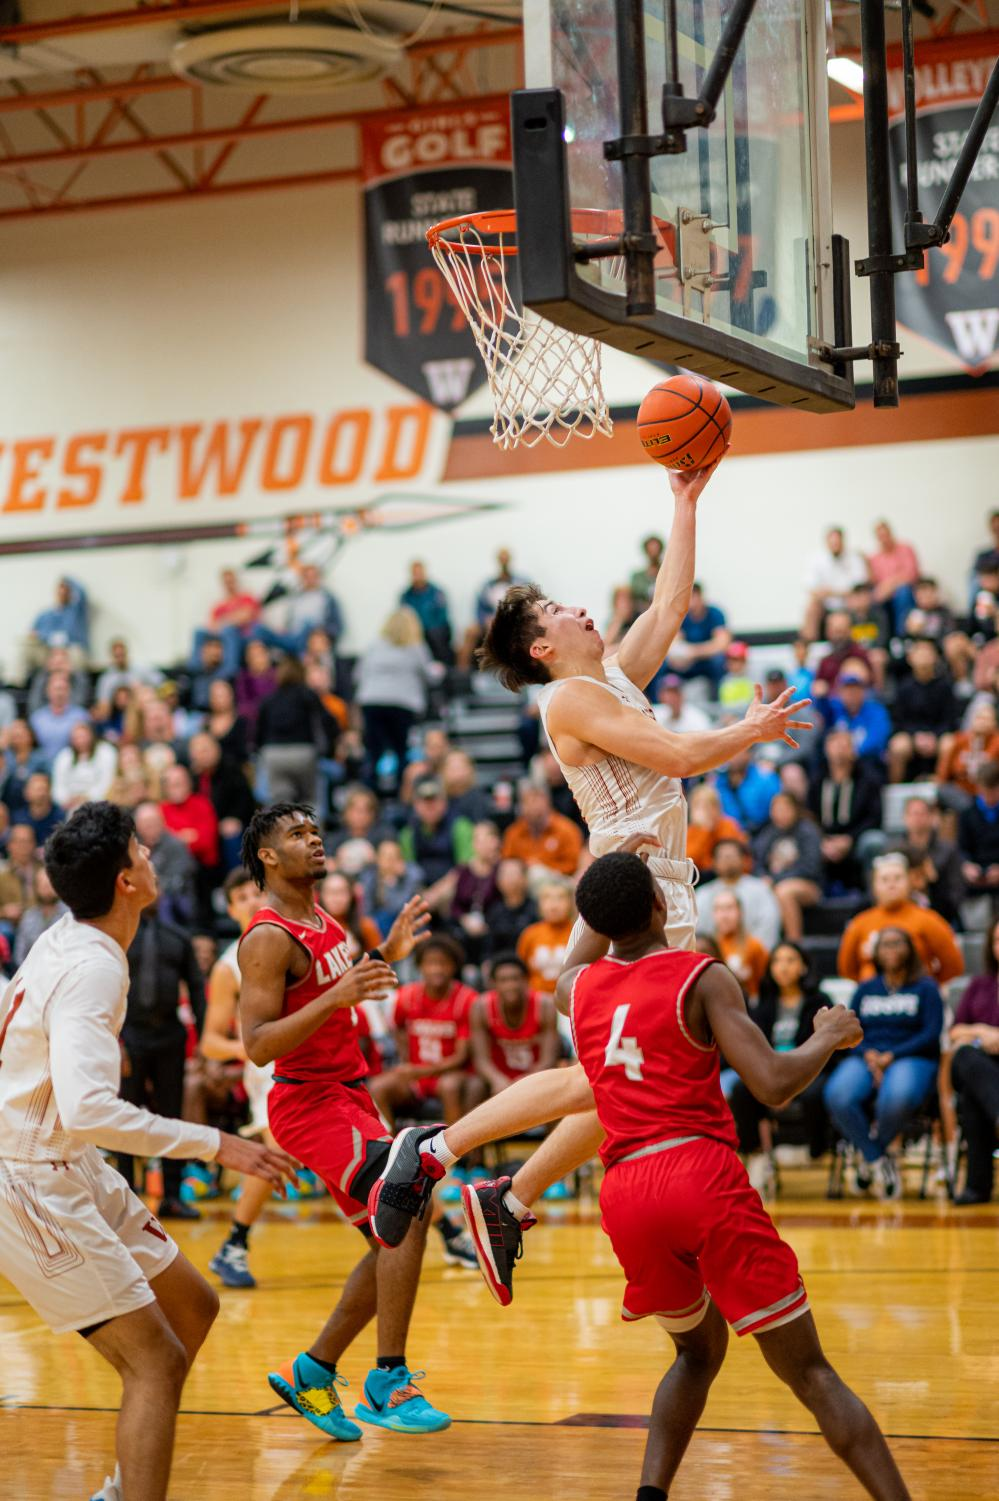 Varsity+Boys%27+Basketball+Slays+Cypress+Lakes+Spartans+47-43+in+Intense+Playoff+Showdown